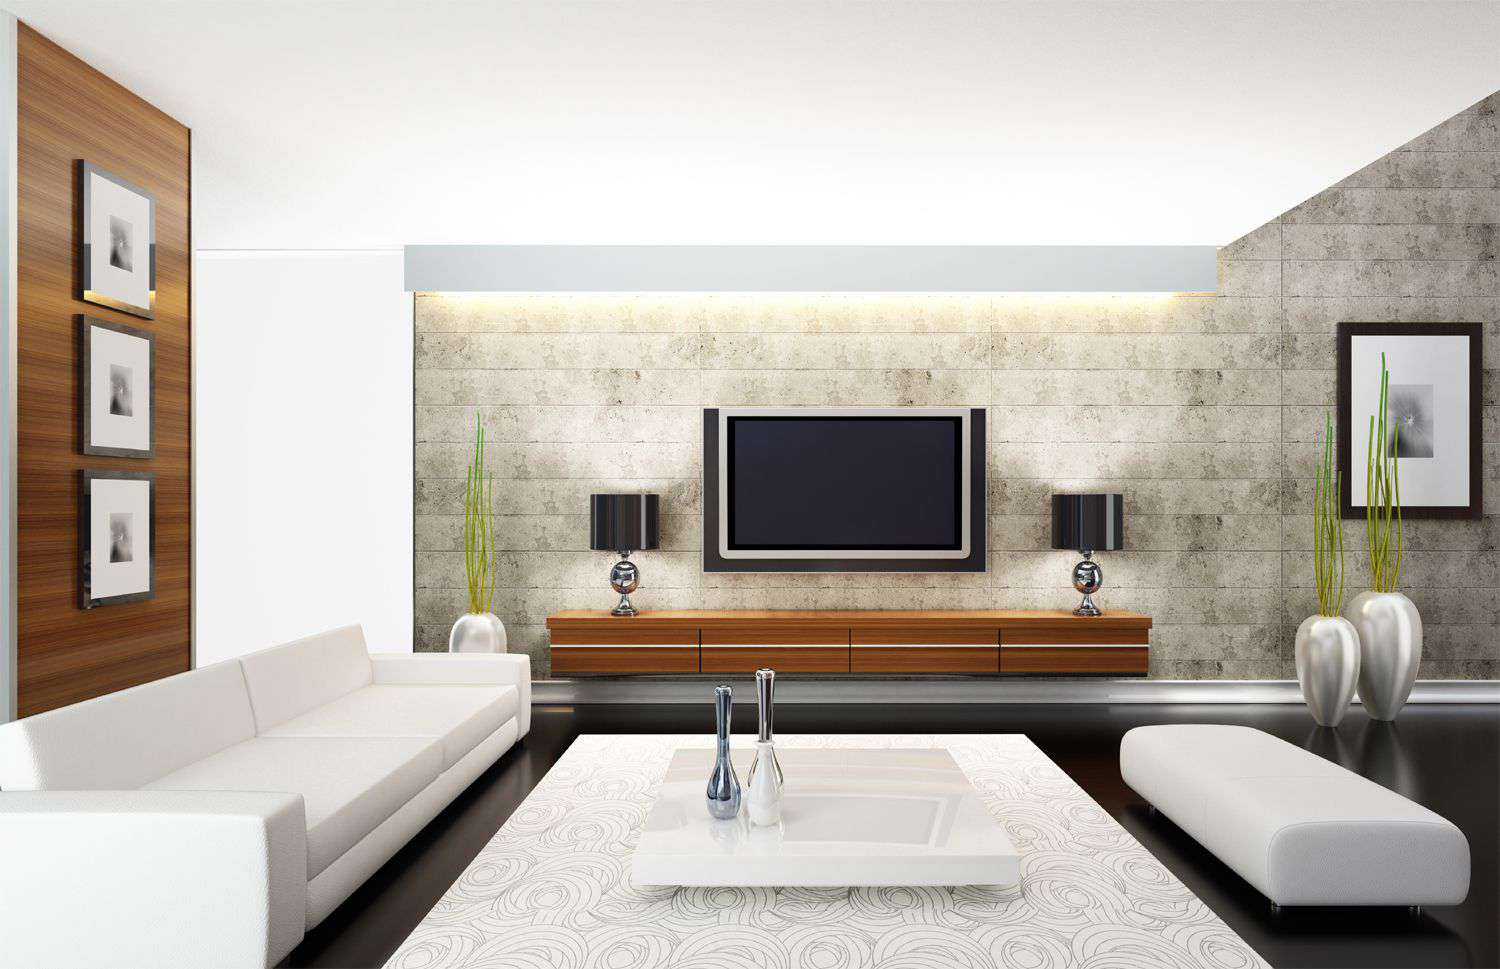 room lighting affect your tv viewing